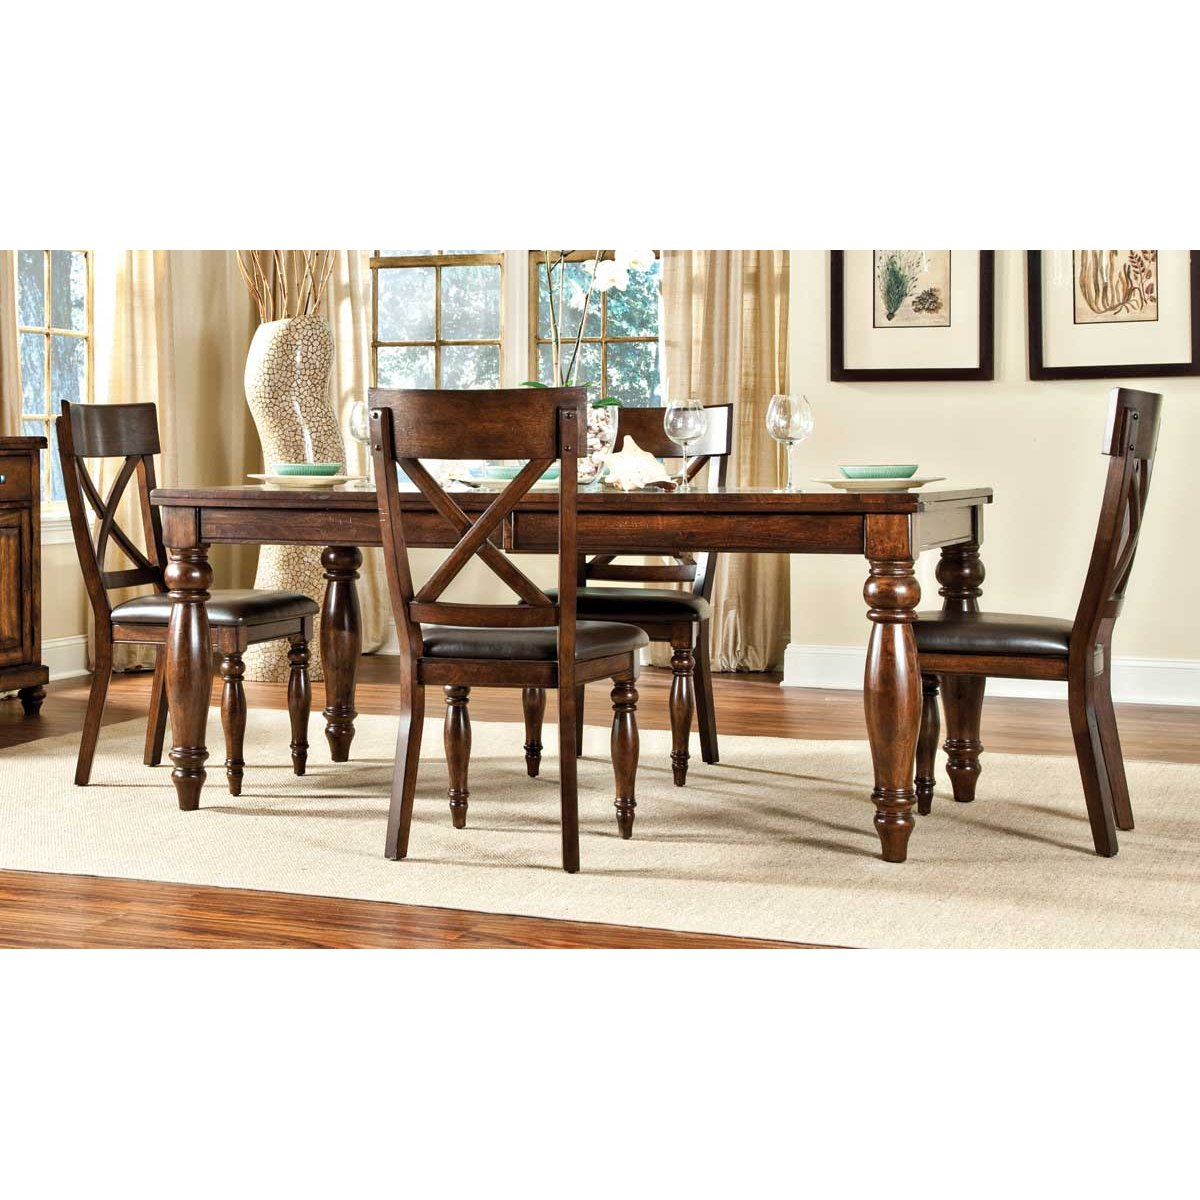 Kingston raisin 5 piece dining set rcwilley image1 for 5 piece dining room sets